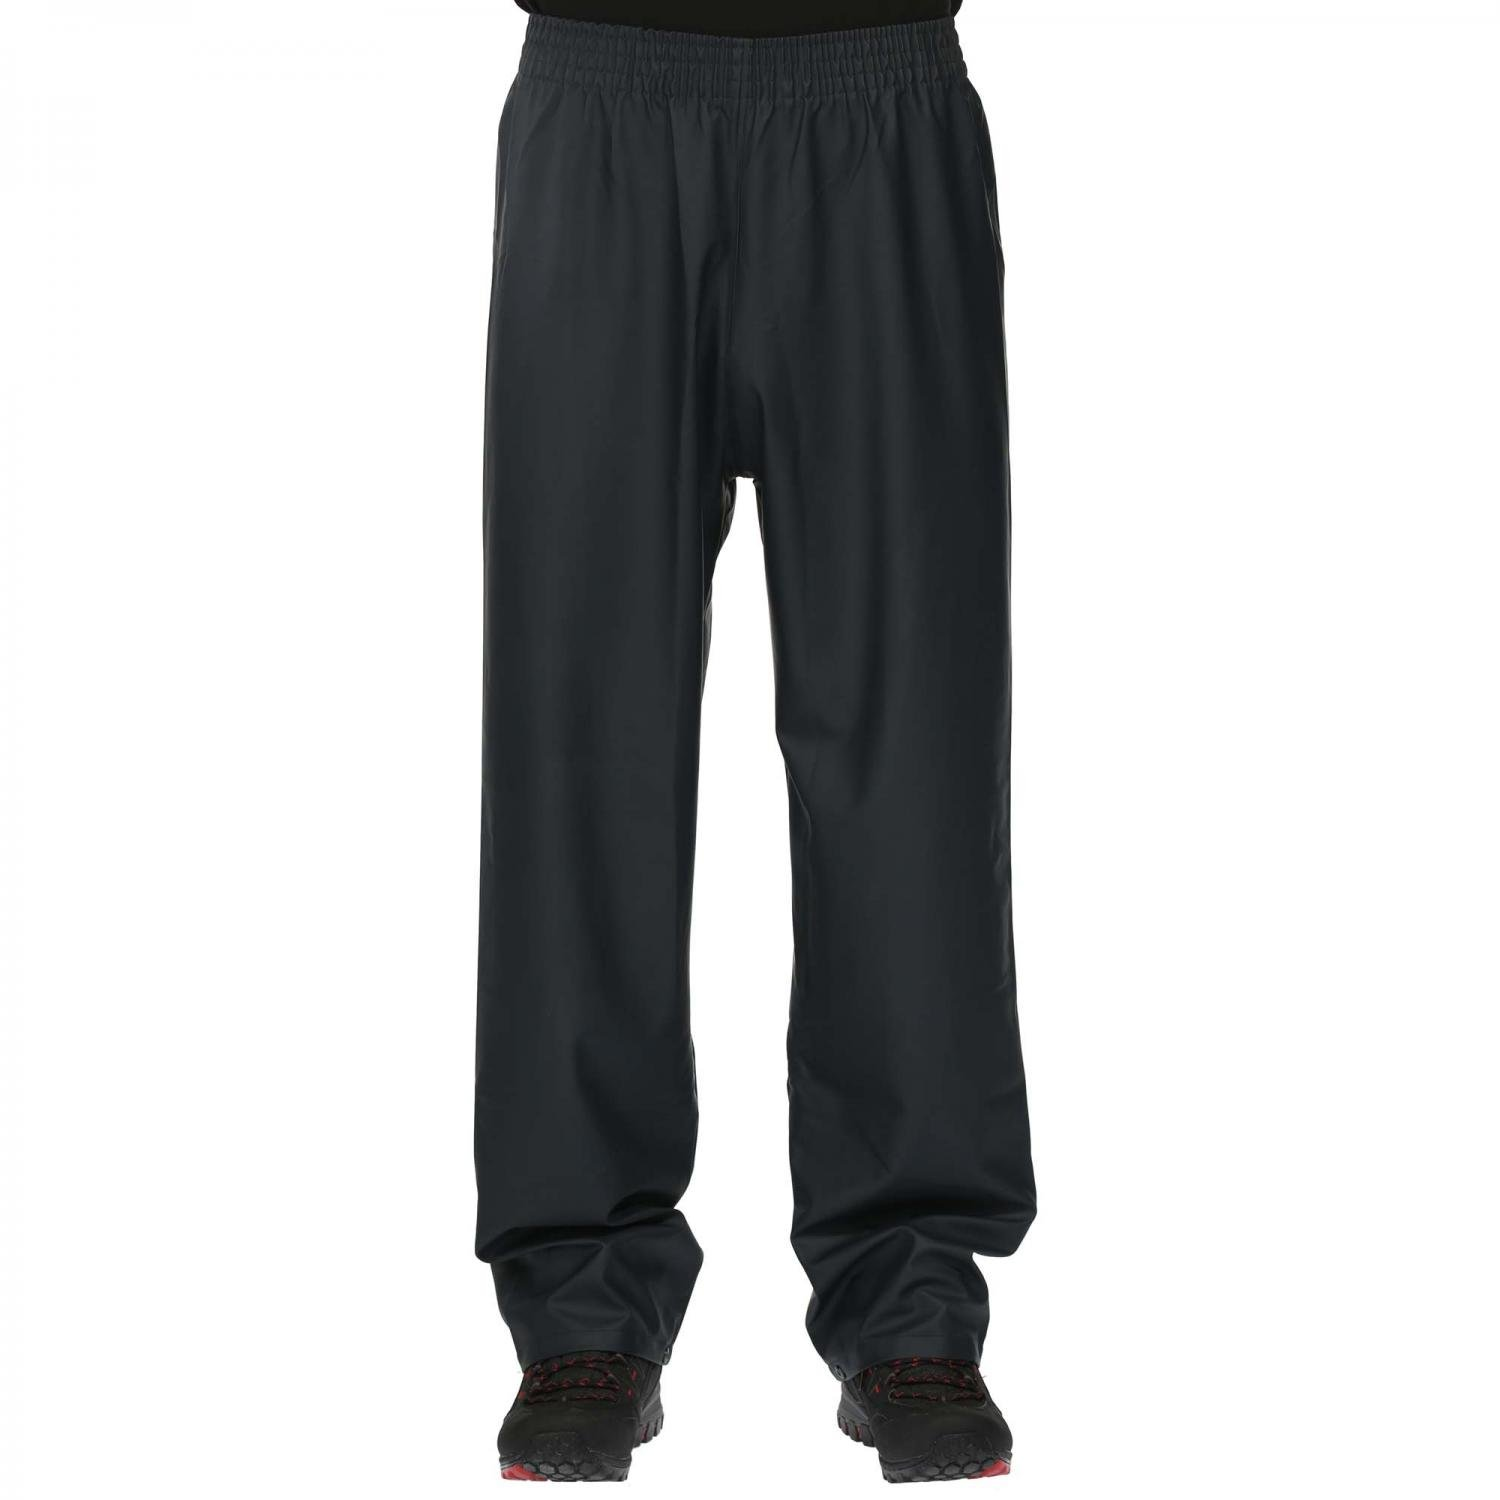 Regatta Great Outdoors Mens Stormflex Waterproof Elasticated Overtrousers